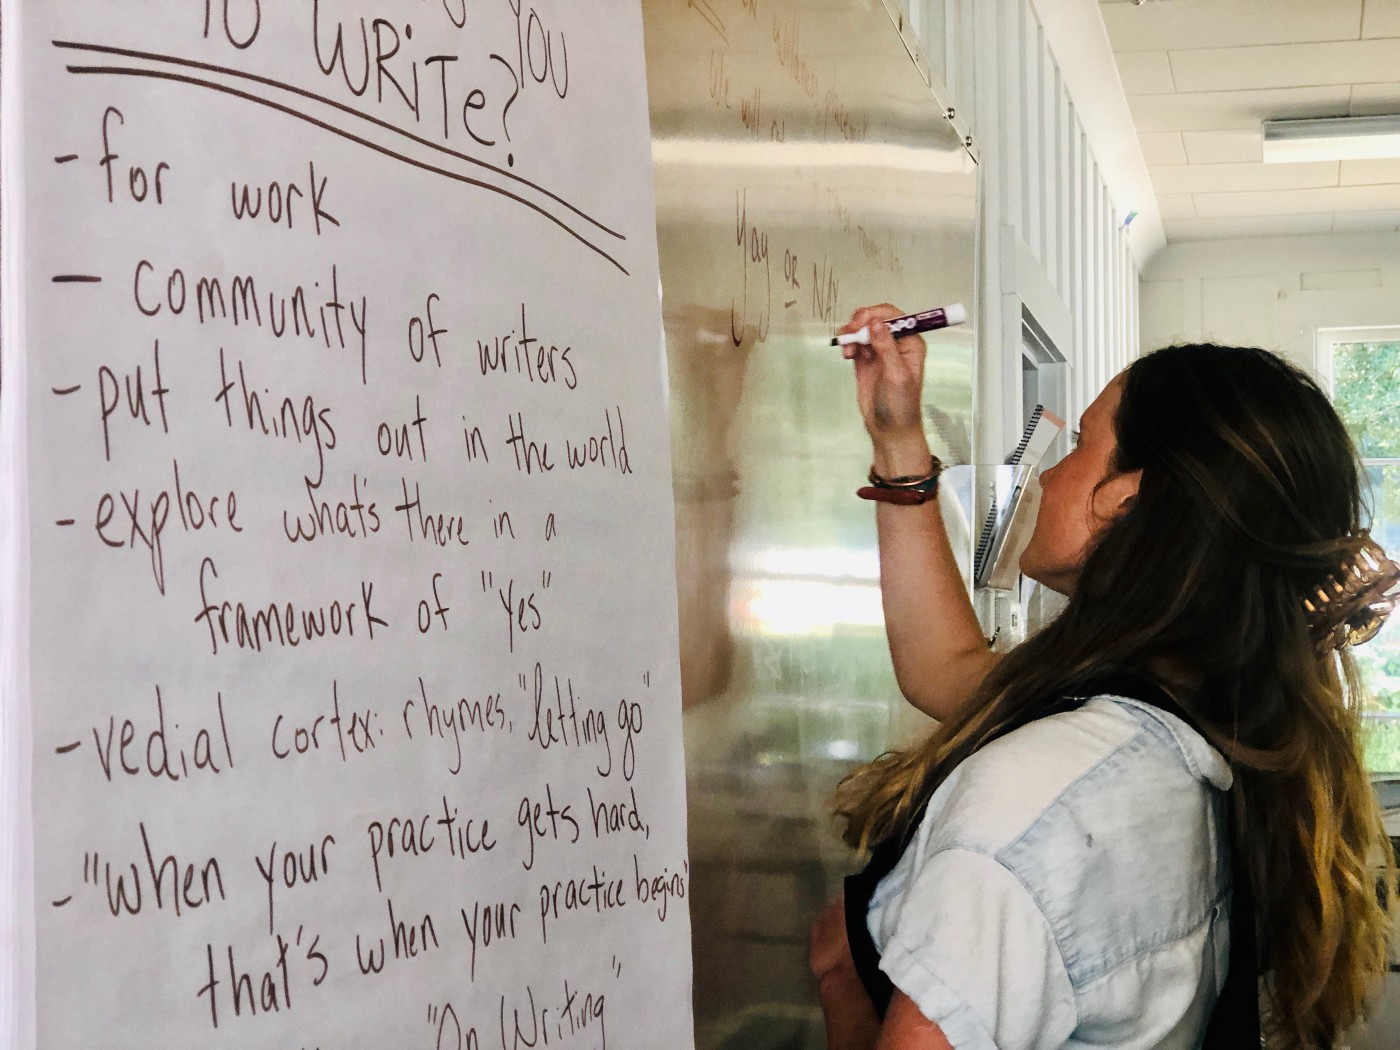 Woman in front of whiteboard brainstorming ideas around writing.